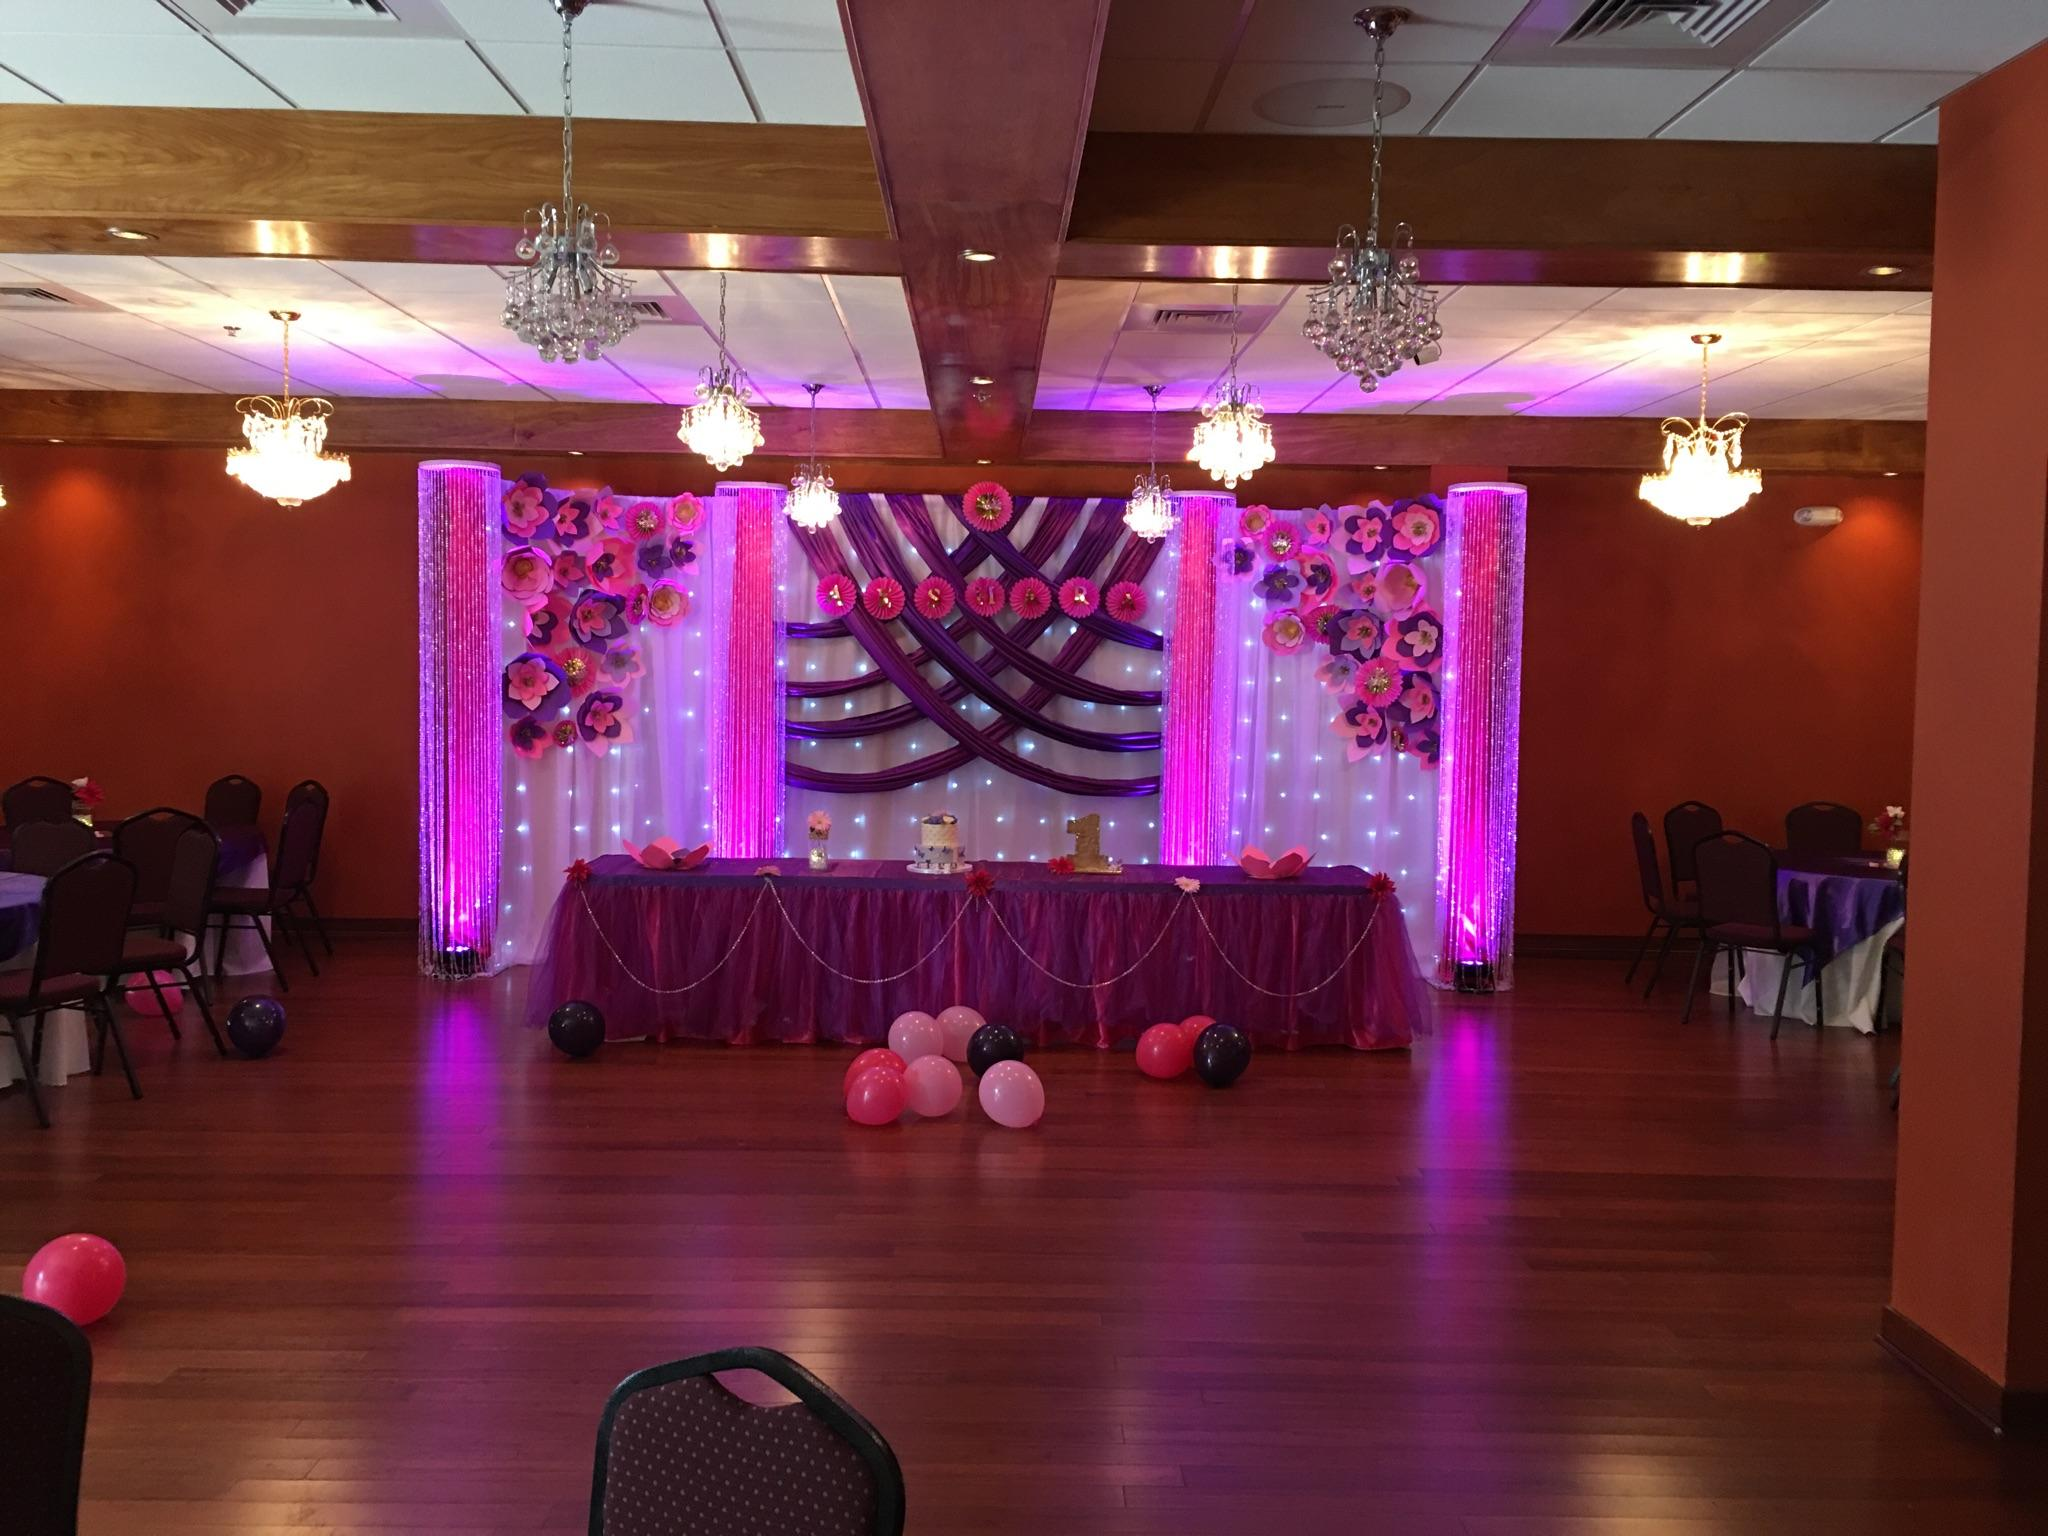 Cheapest best venues for weddings list in charlotte banquet halls weddings venues in charlotte solutioingenieria Image collections